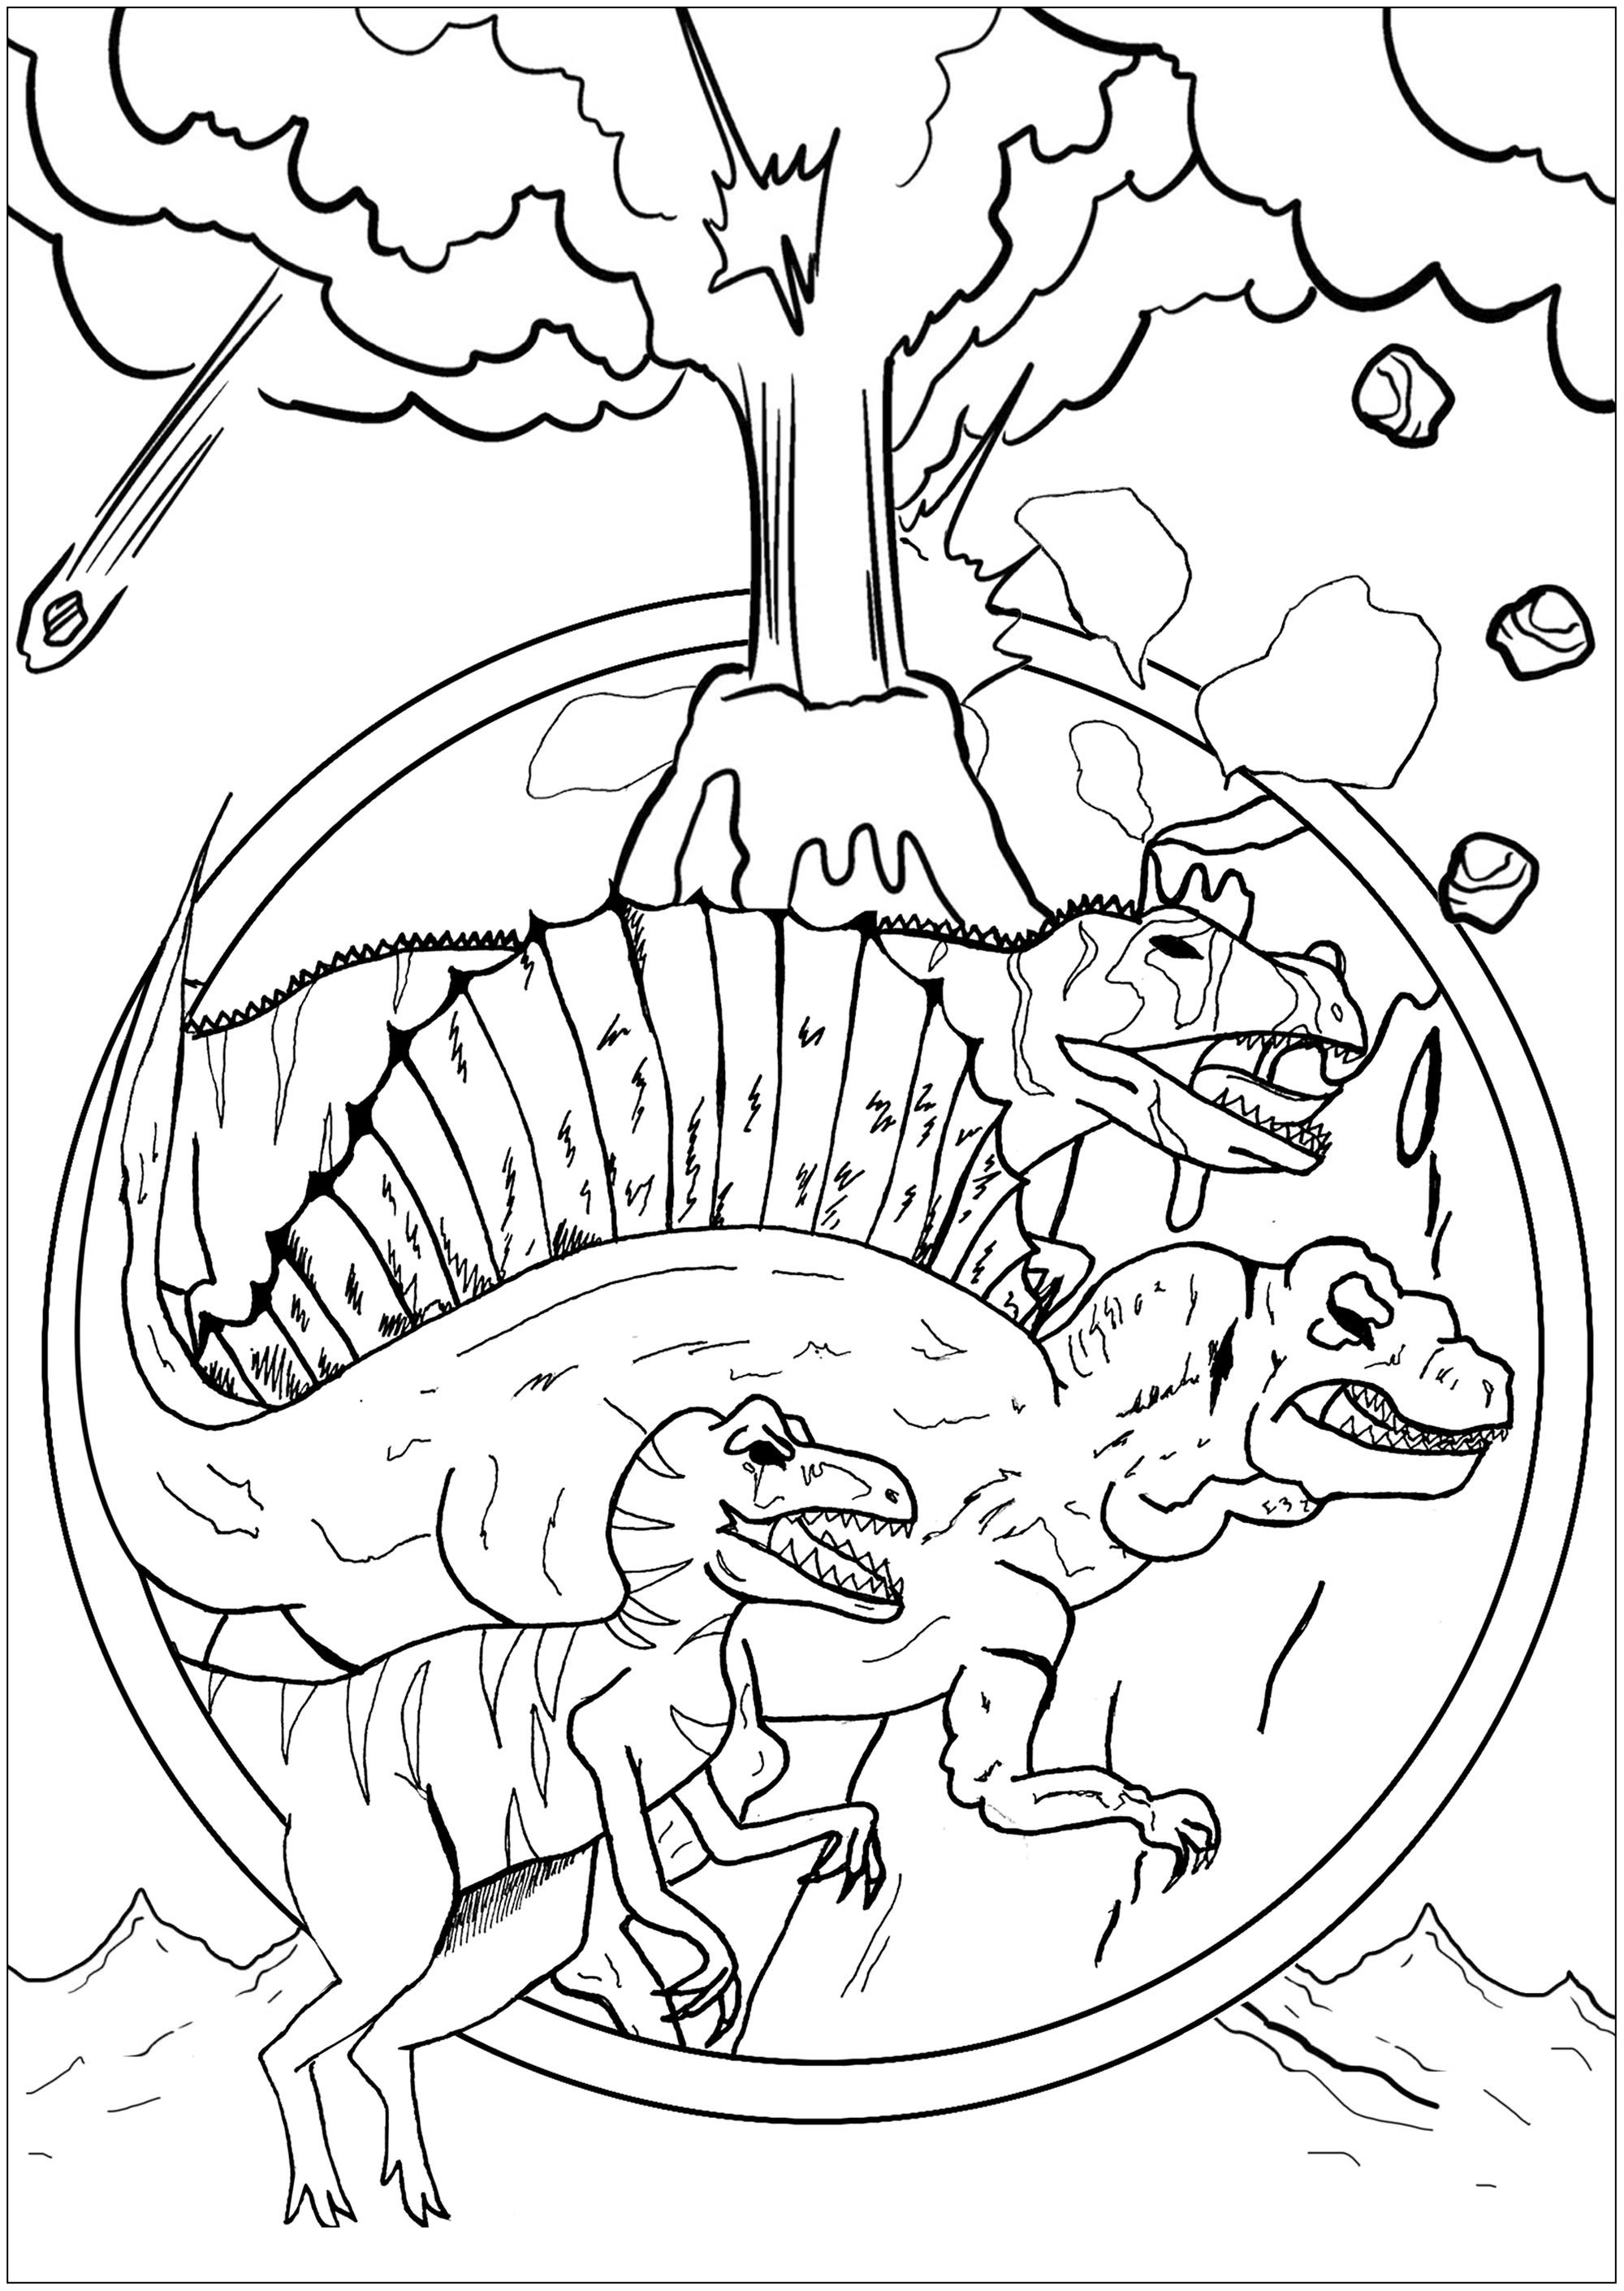 Tree Dinosaurs Dinosaurs Coloring Pages For Adults Just Color